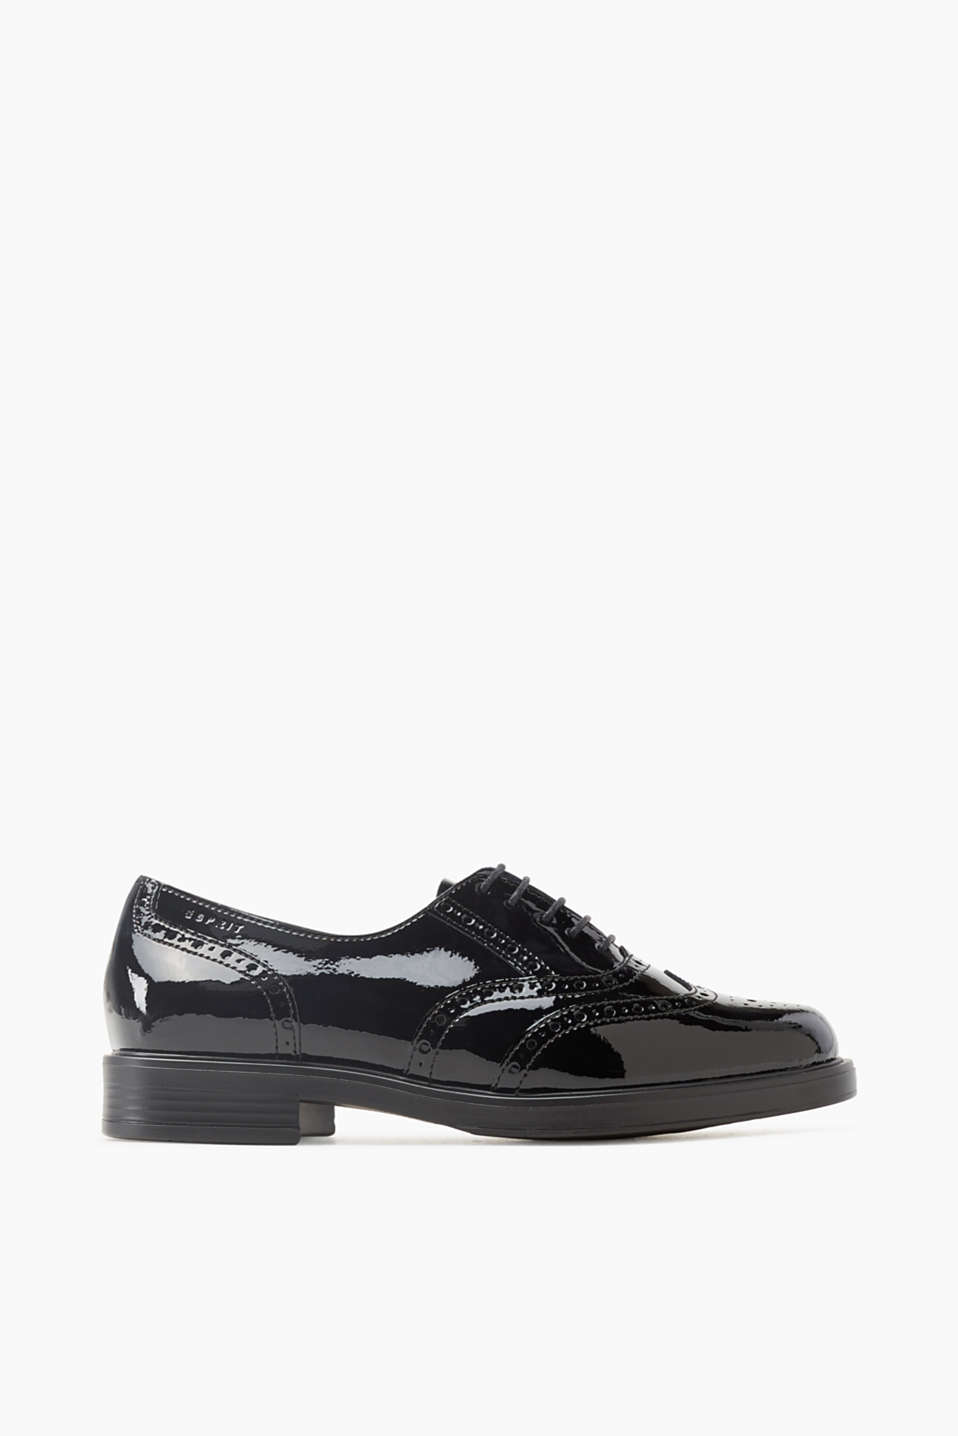 Timeless and elegant! These patent leather brogues with a Budapest pattern prove how elegant flats can be!